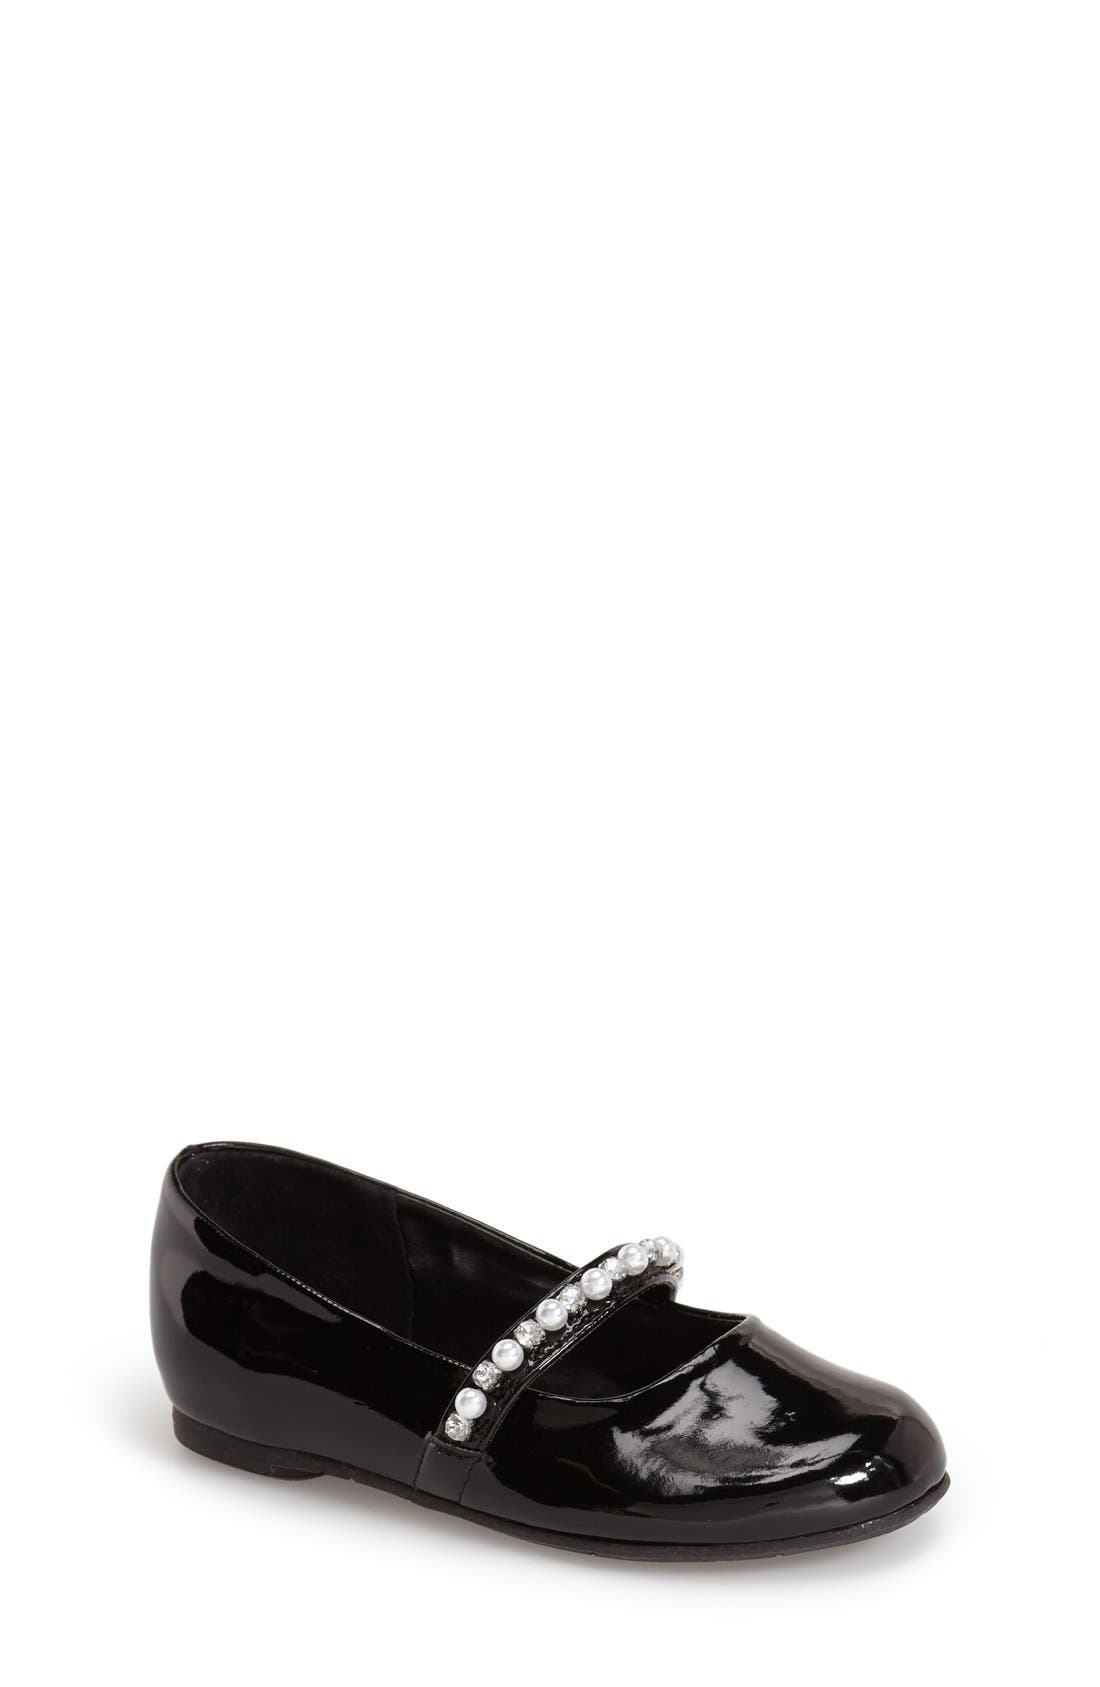 'Nataly' Slip-On,                         Main,                         color, BLACK PATENT